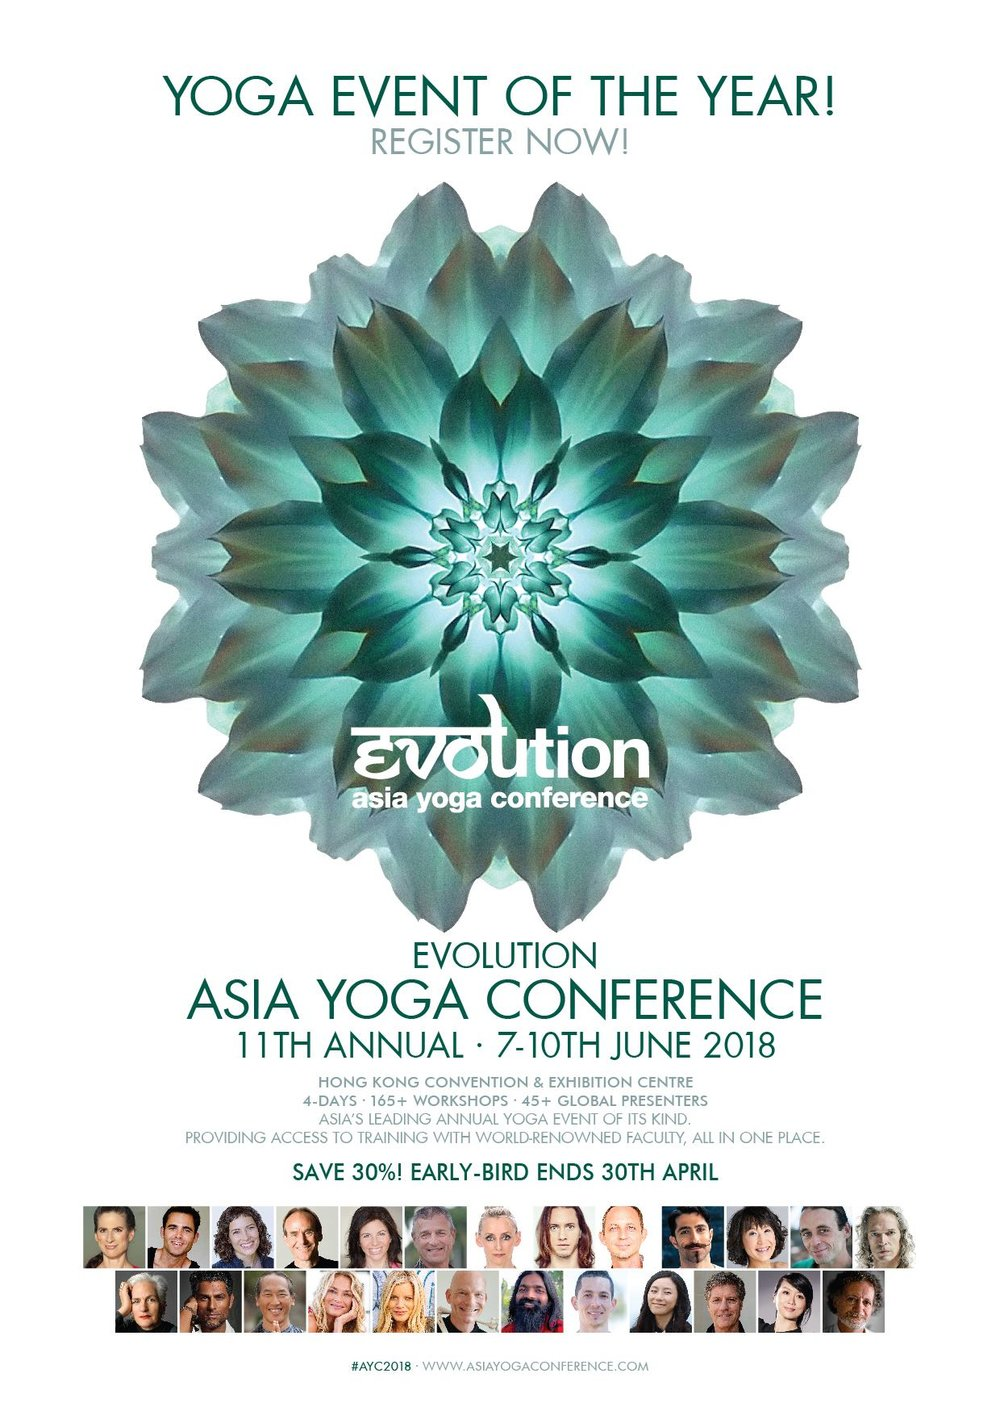 Evolution Asia Yoga Conference 2018.jpg